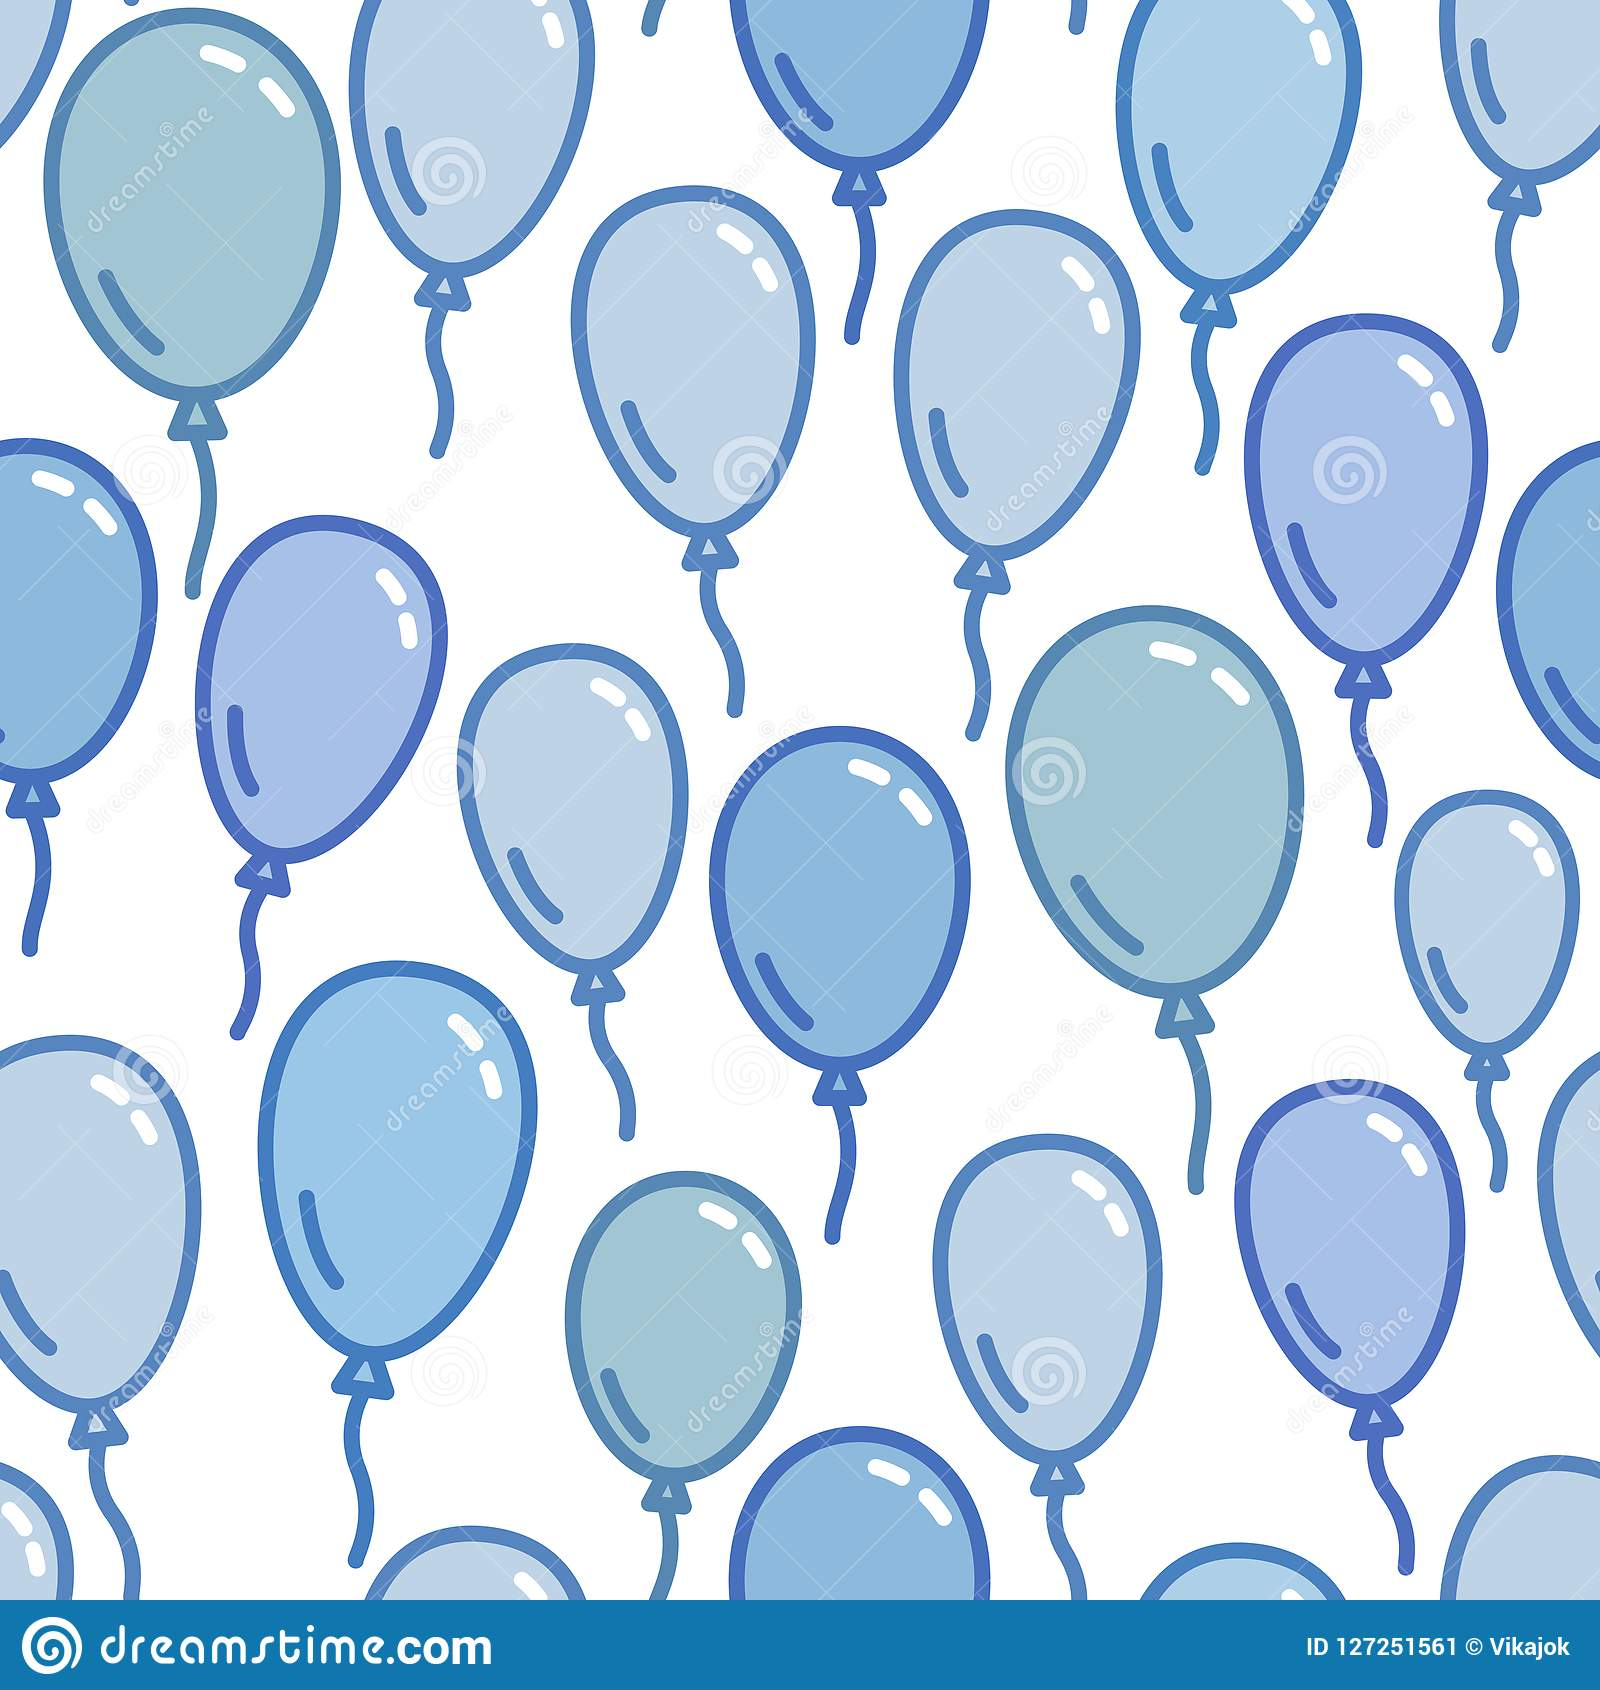 Seamless Pattern With Blue Balloons Naive And Simple